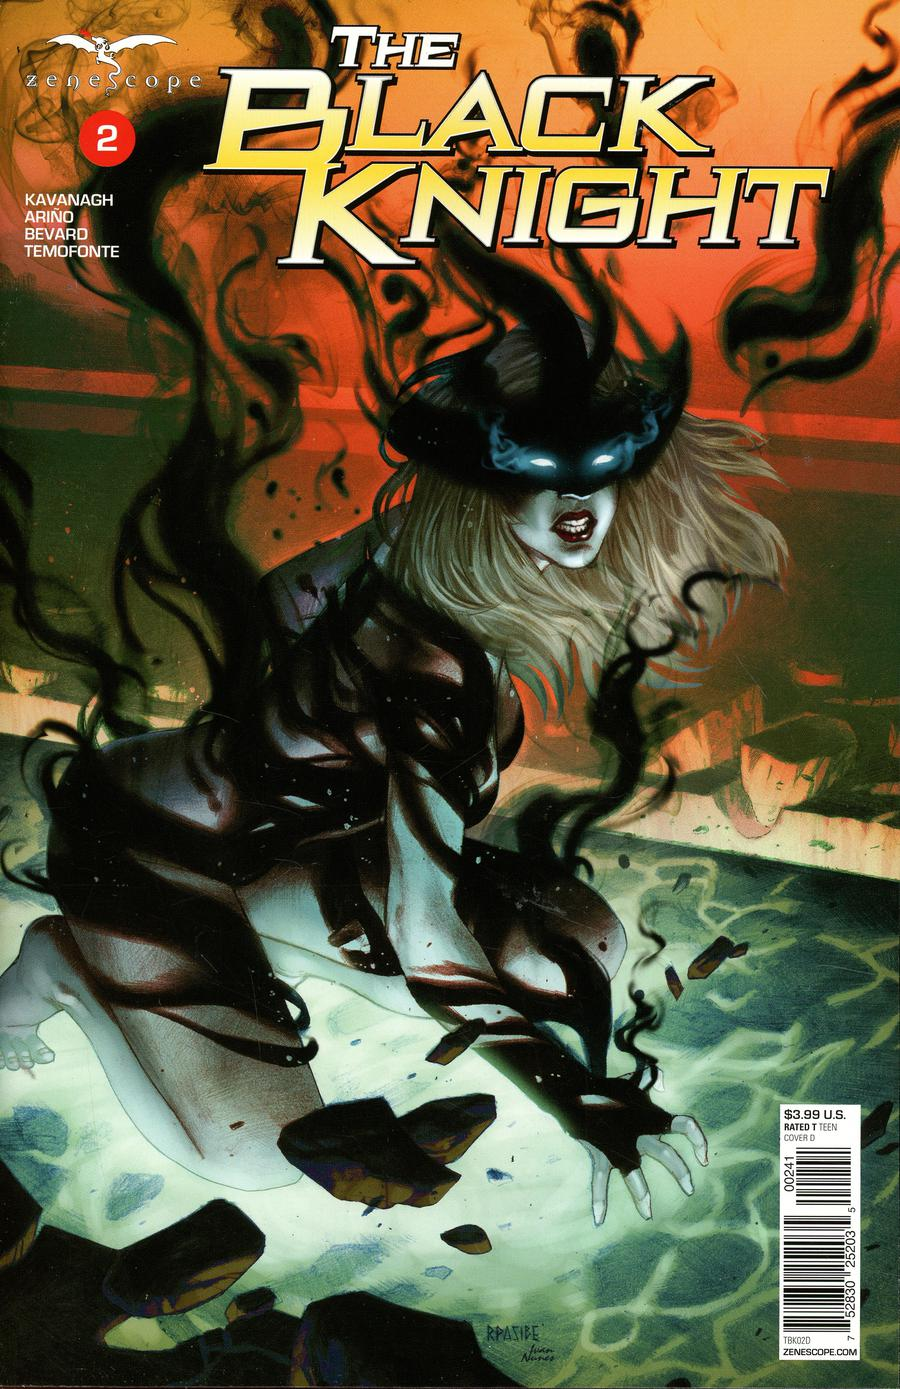 Grimm Fairy Tales Presents Black Knight #2 Cover D Ryan Pasibe